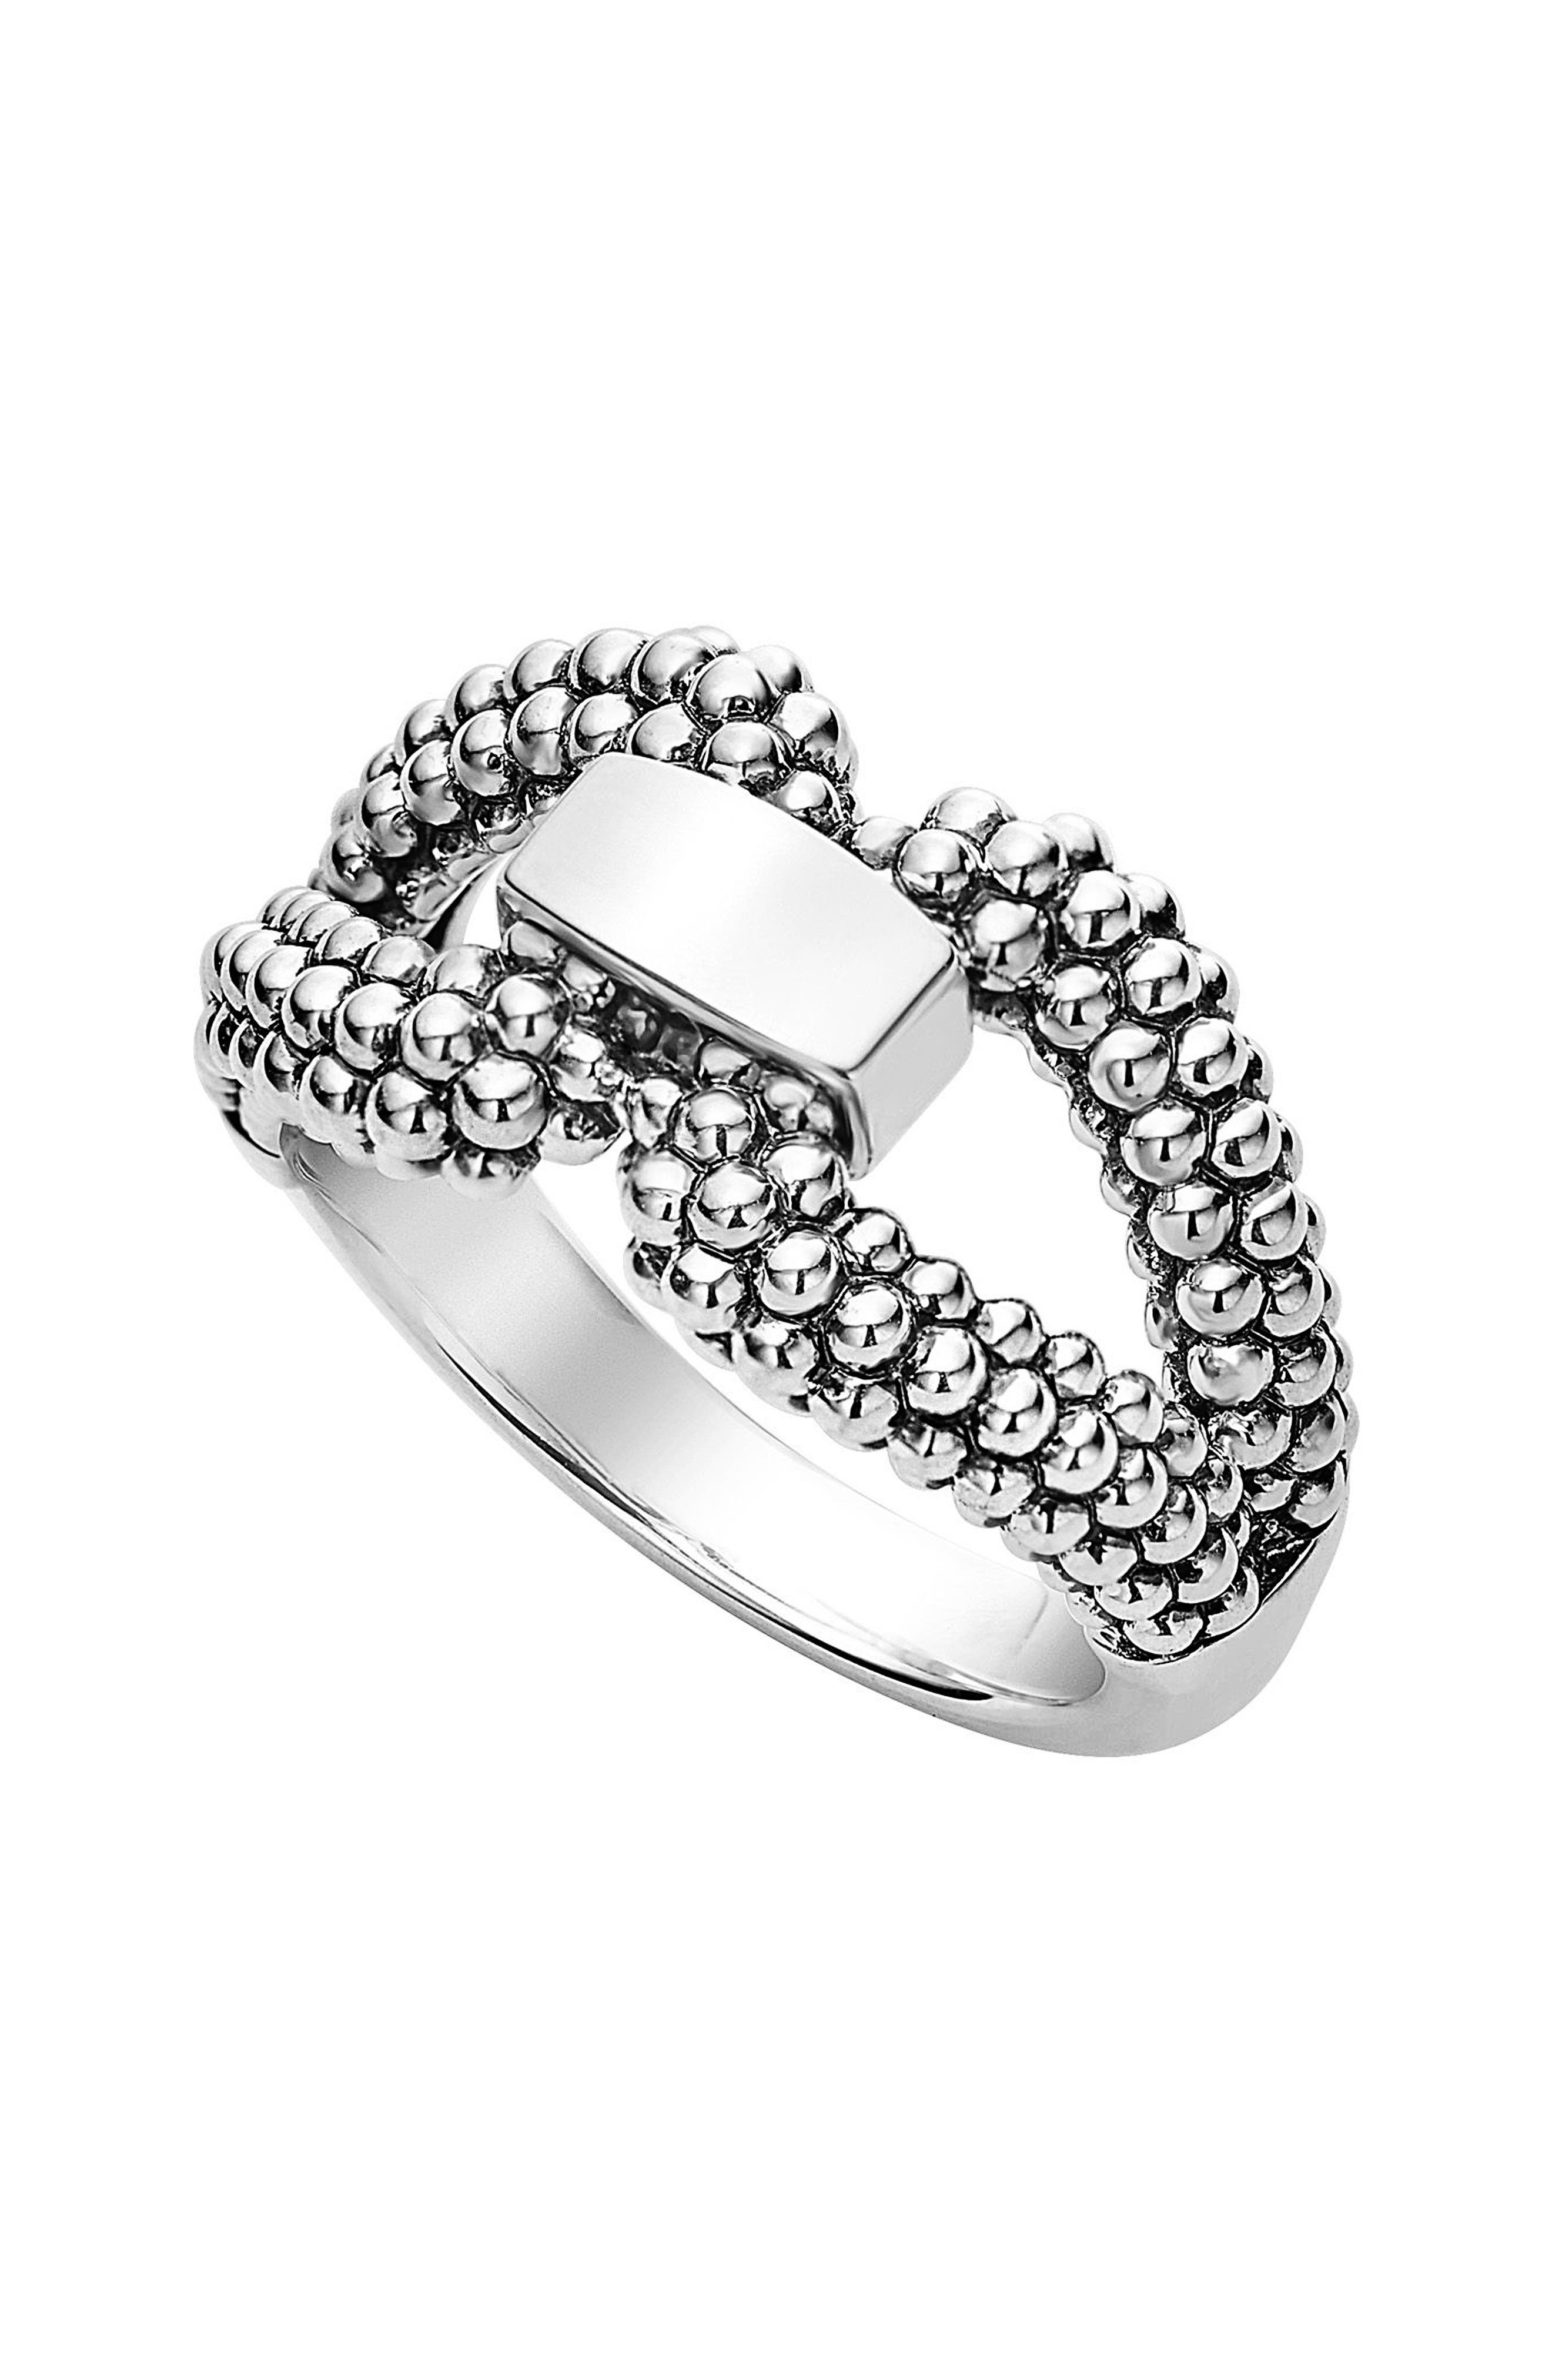 Derby Caviar Ring,                         Main,                         color,